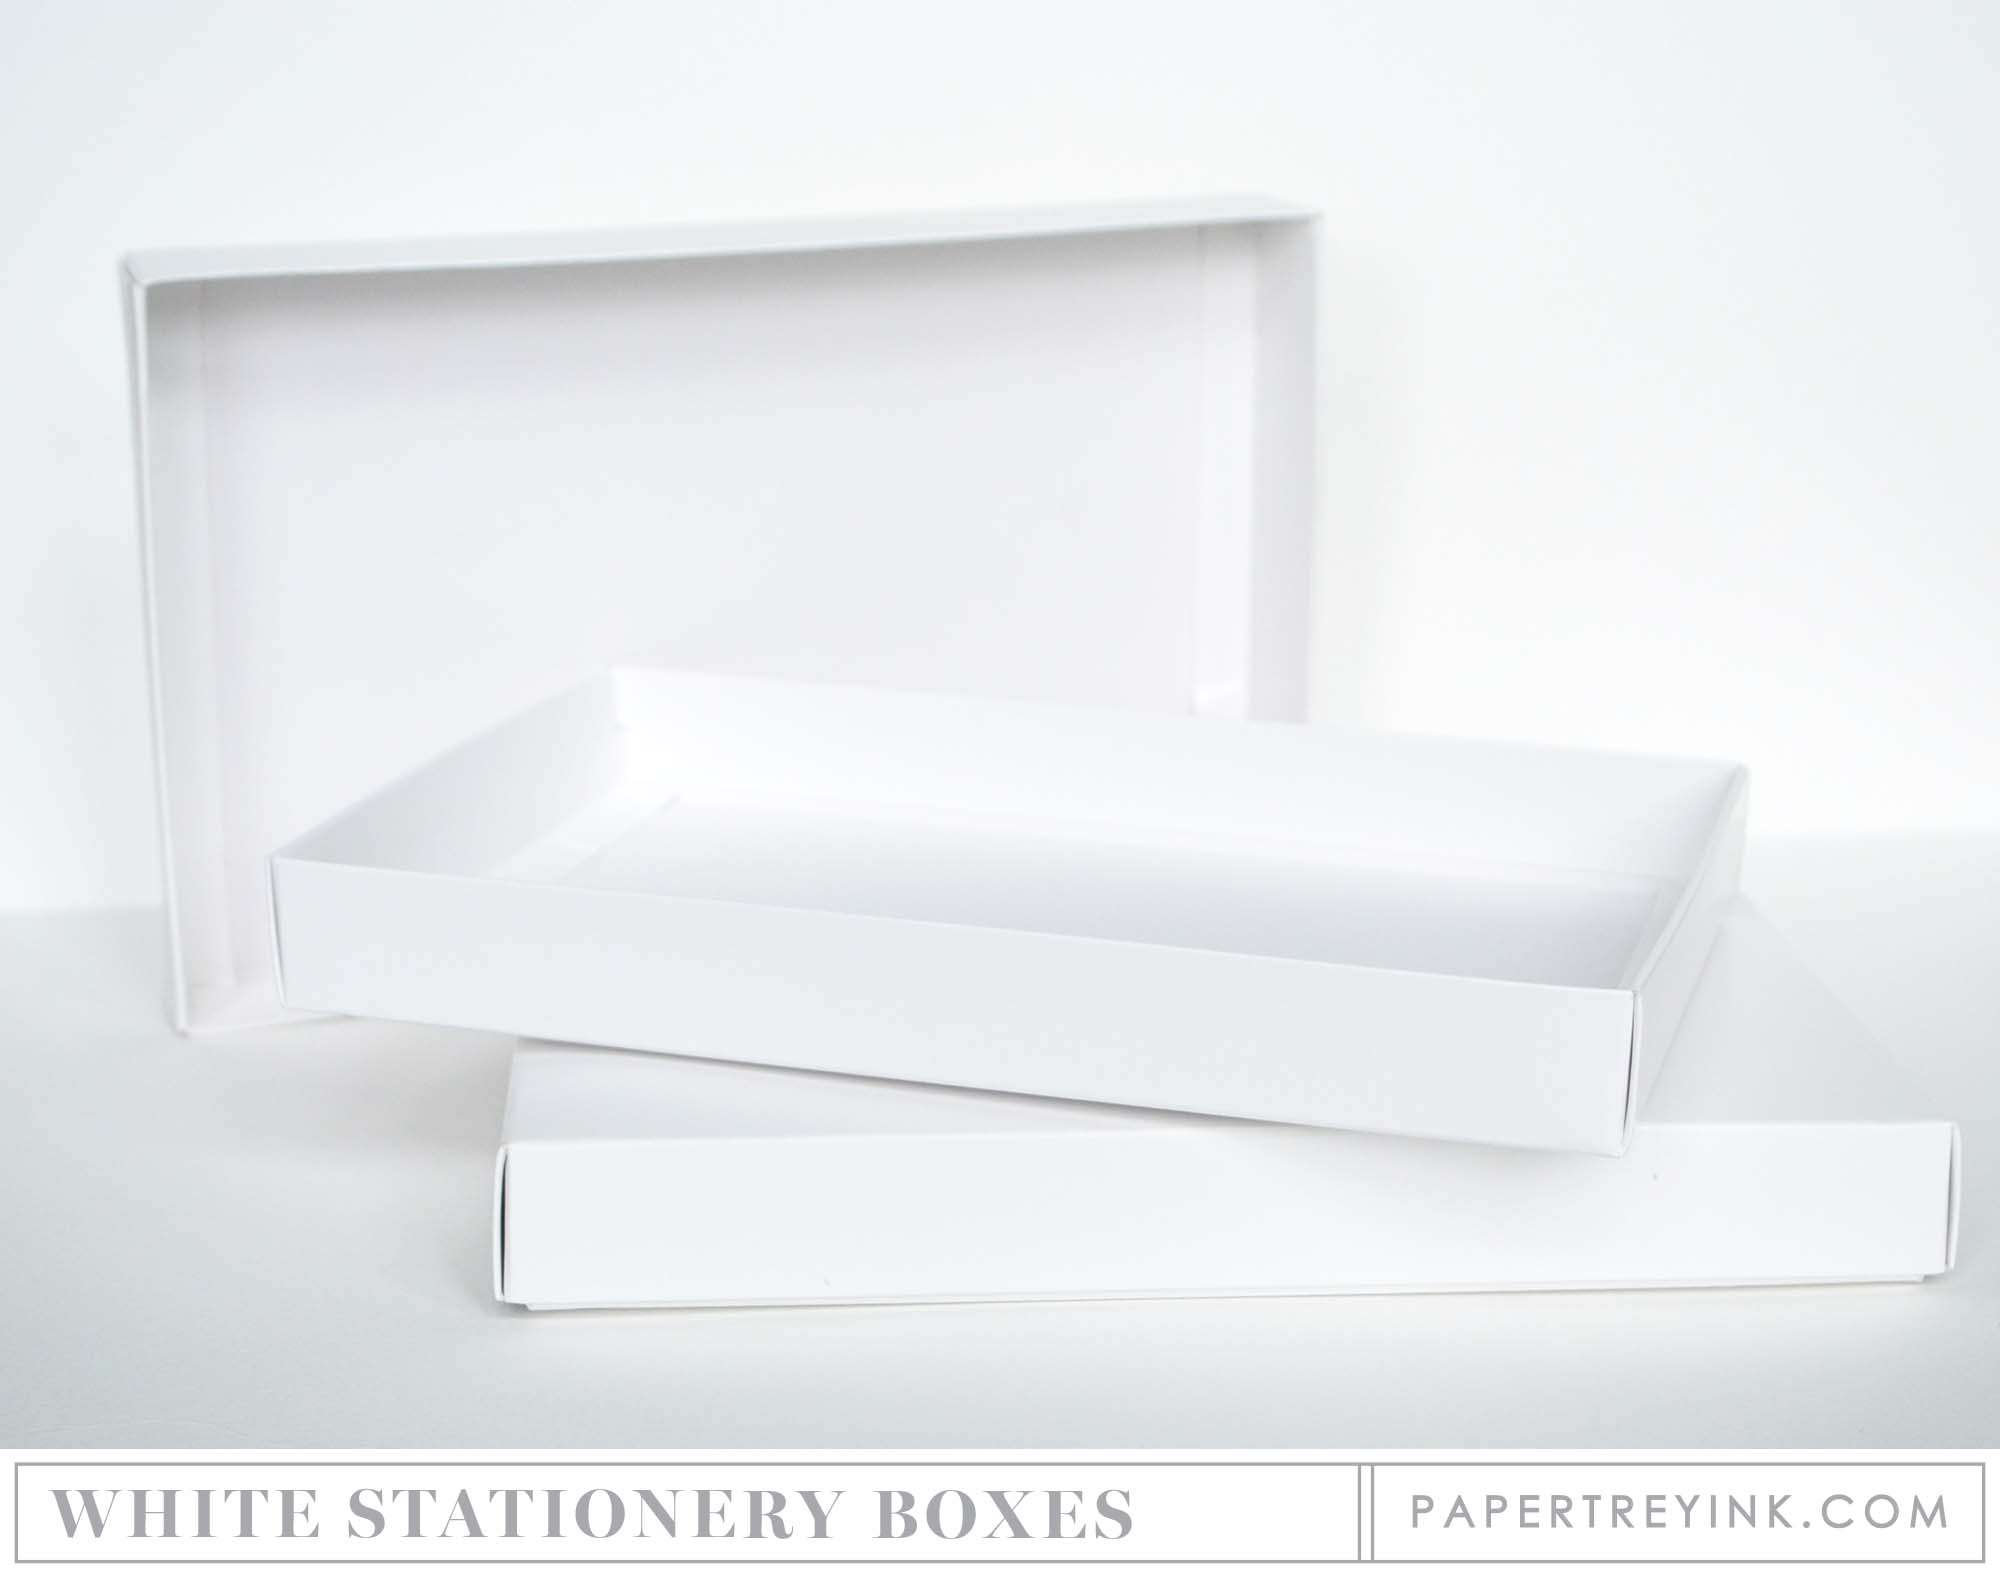 Stationary Boxes Basic White Stationery Box 2 Per Package Papertrey Ink Clear